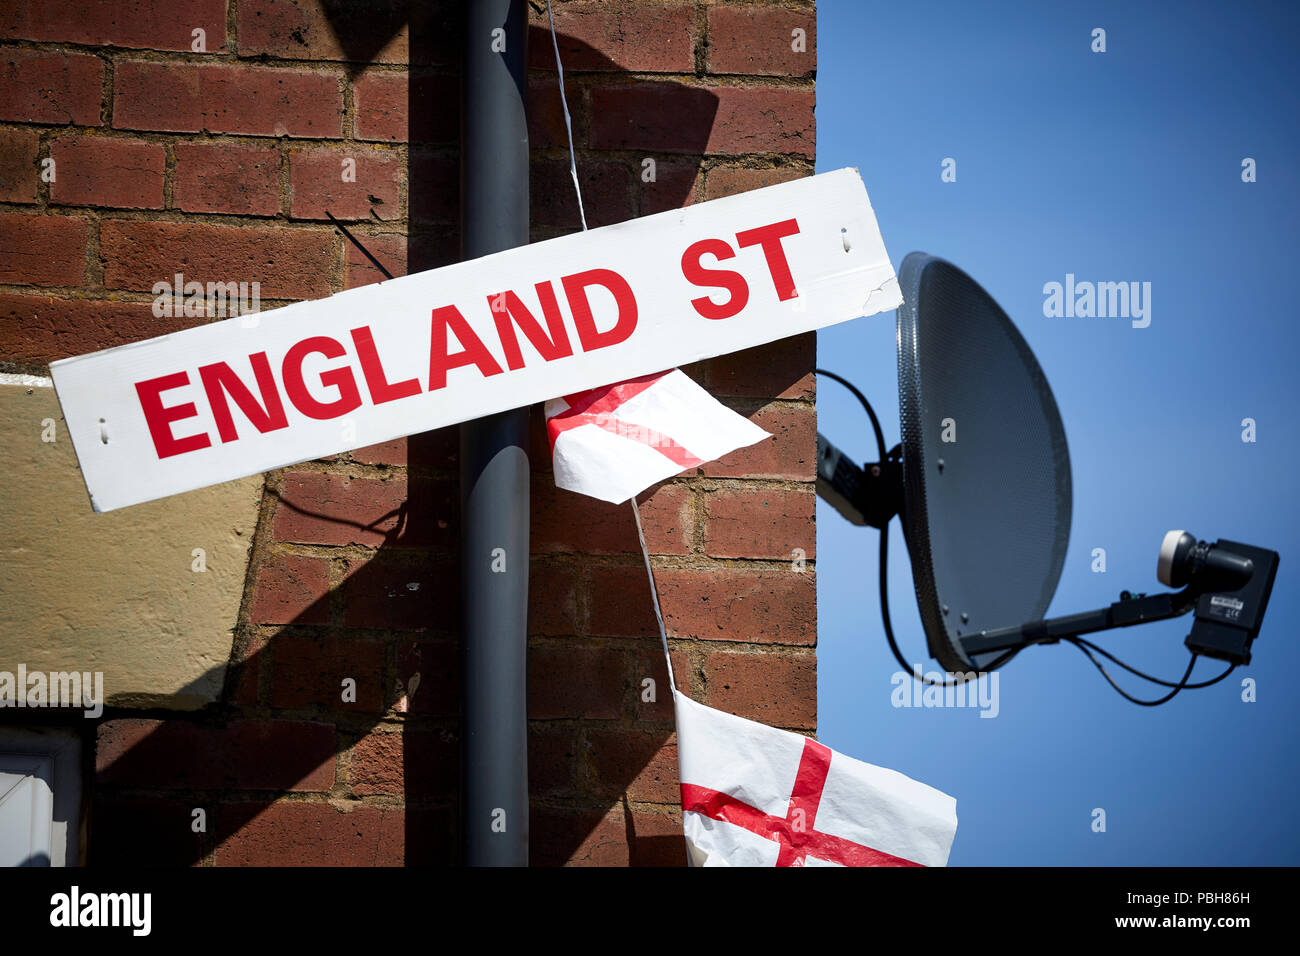 Wales Street in Oldham, Gtr Manchester has changed to name to England Street  for the World Cup 2018 - Stock Image